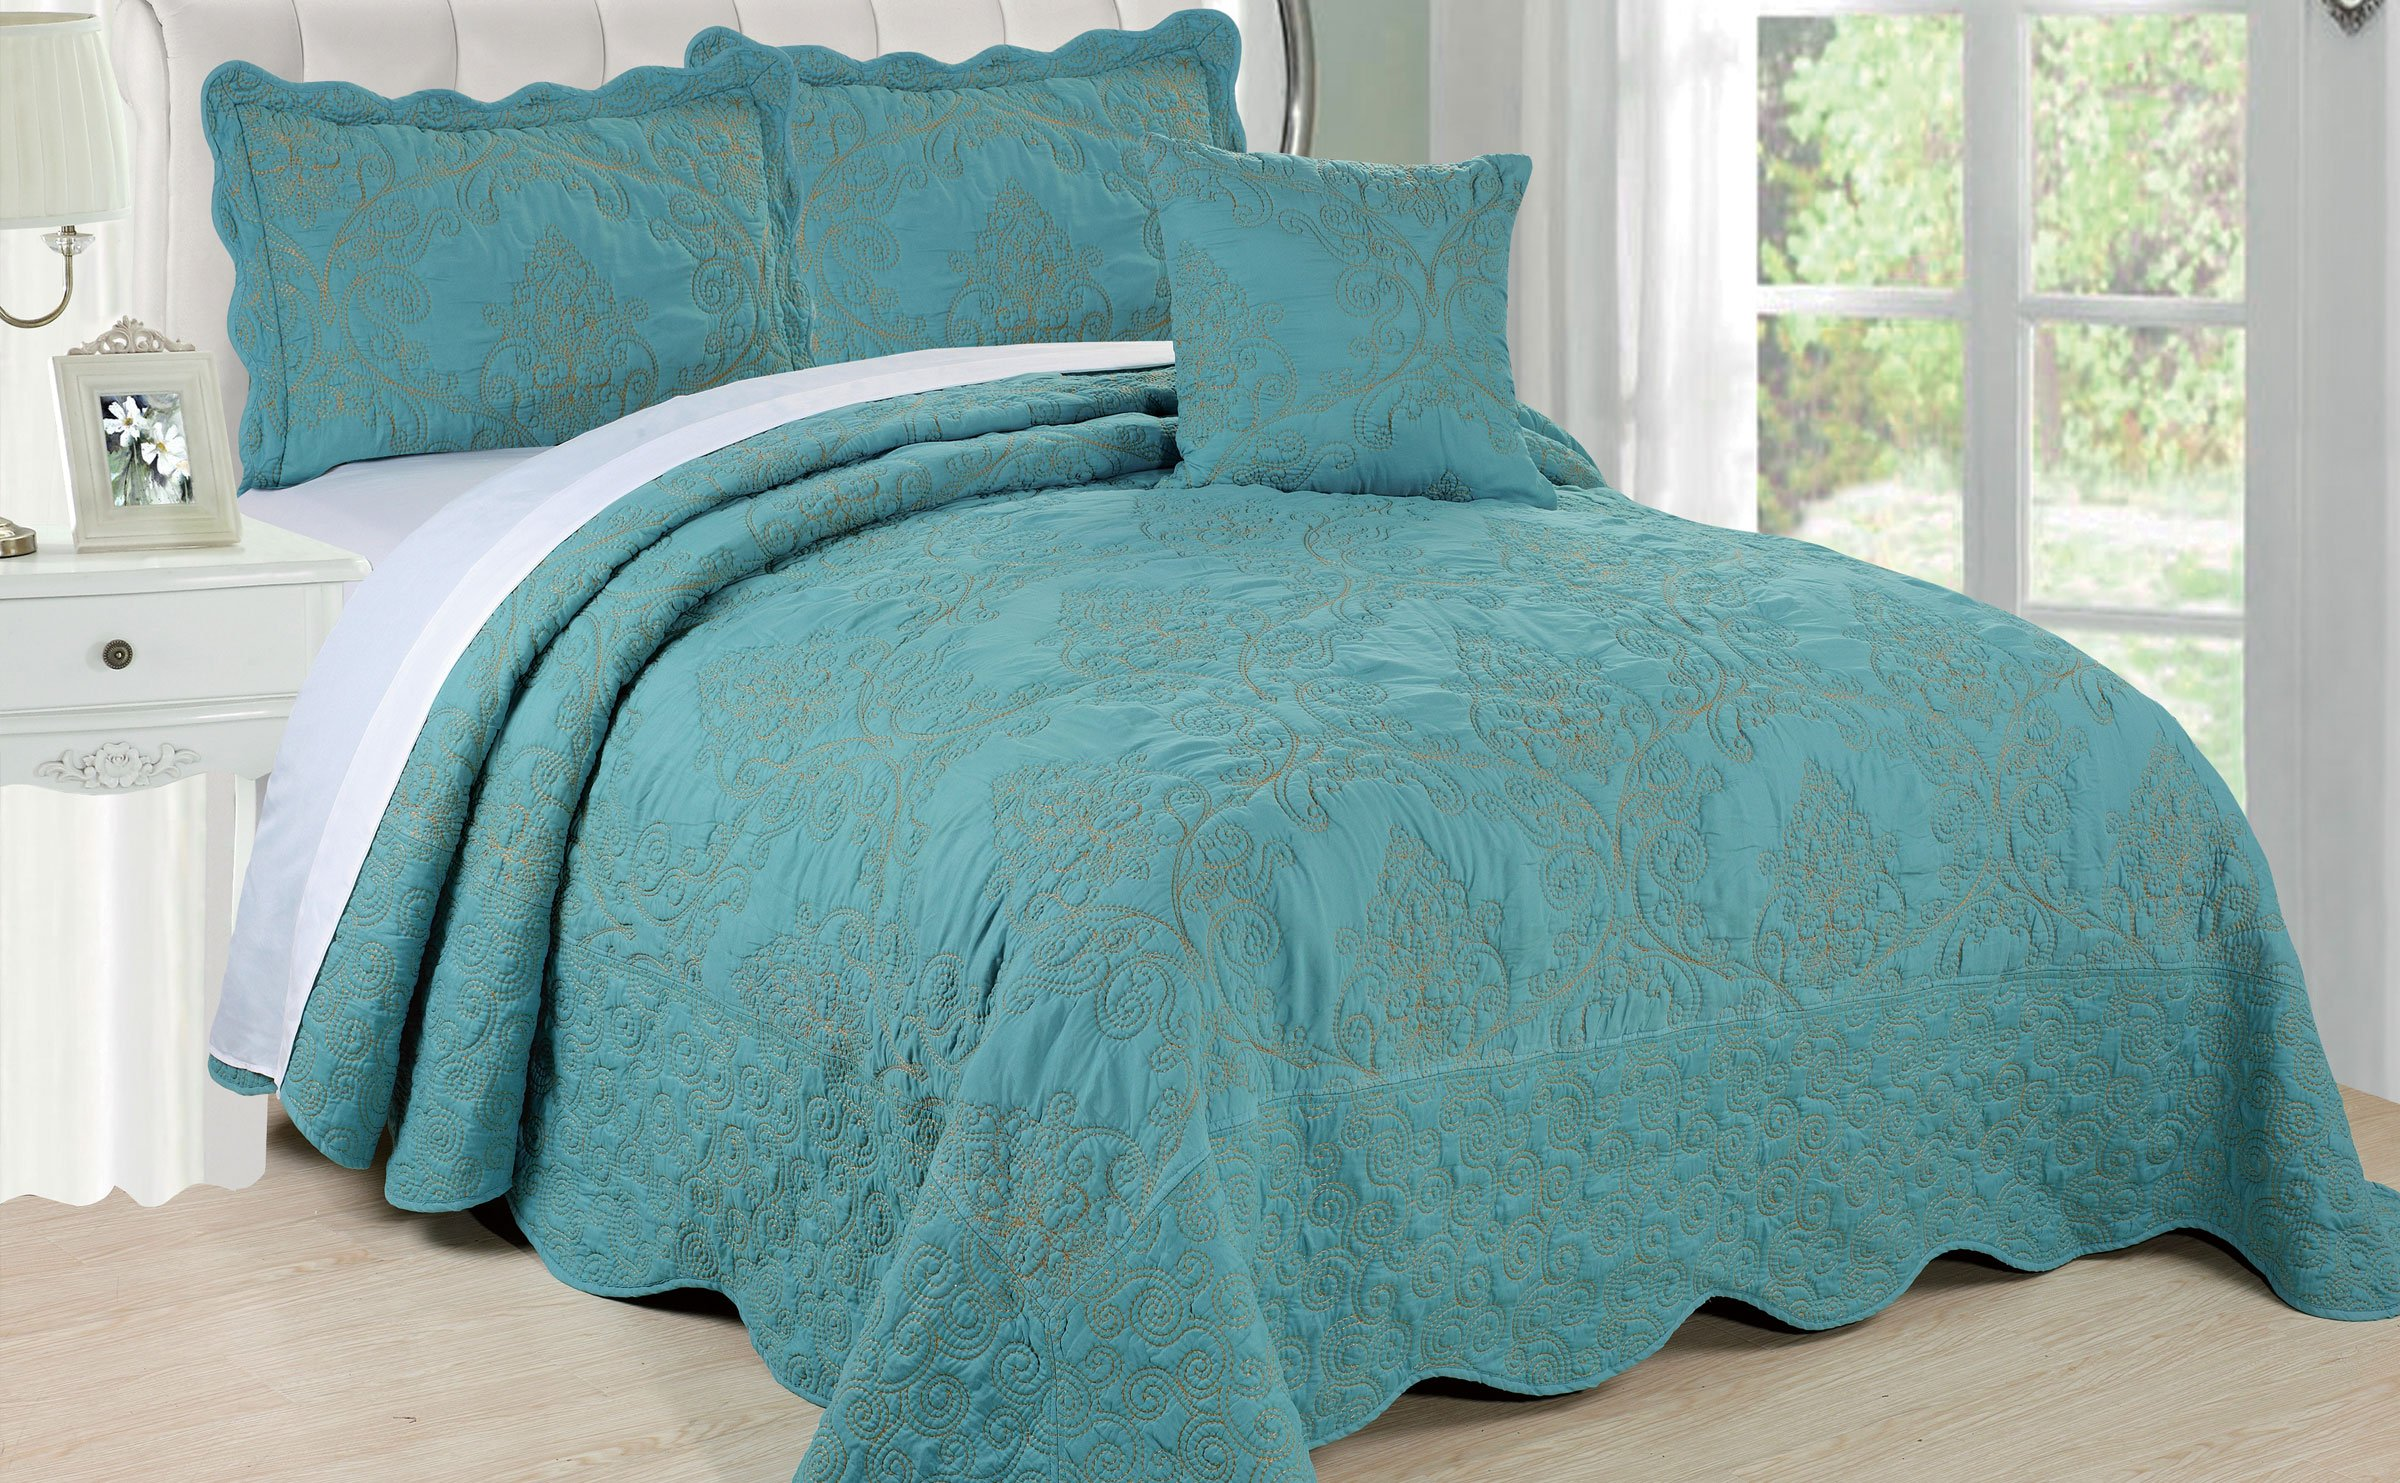 Serenta Damask 4 Piece Bedspread Set, King, Teal by Home Soft Things